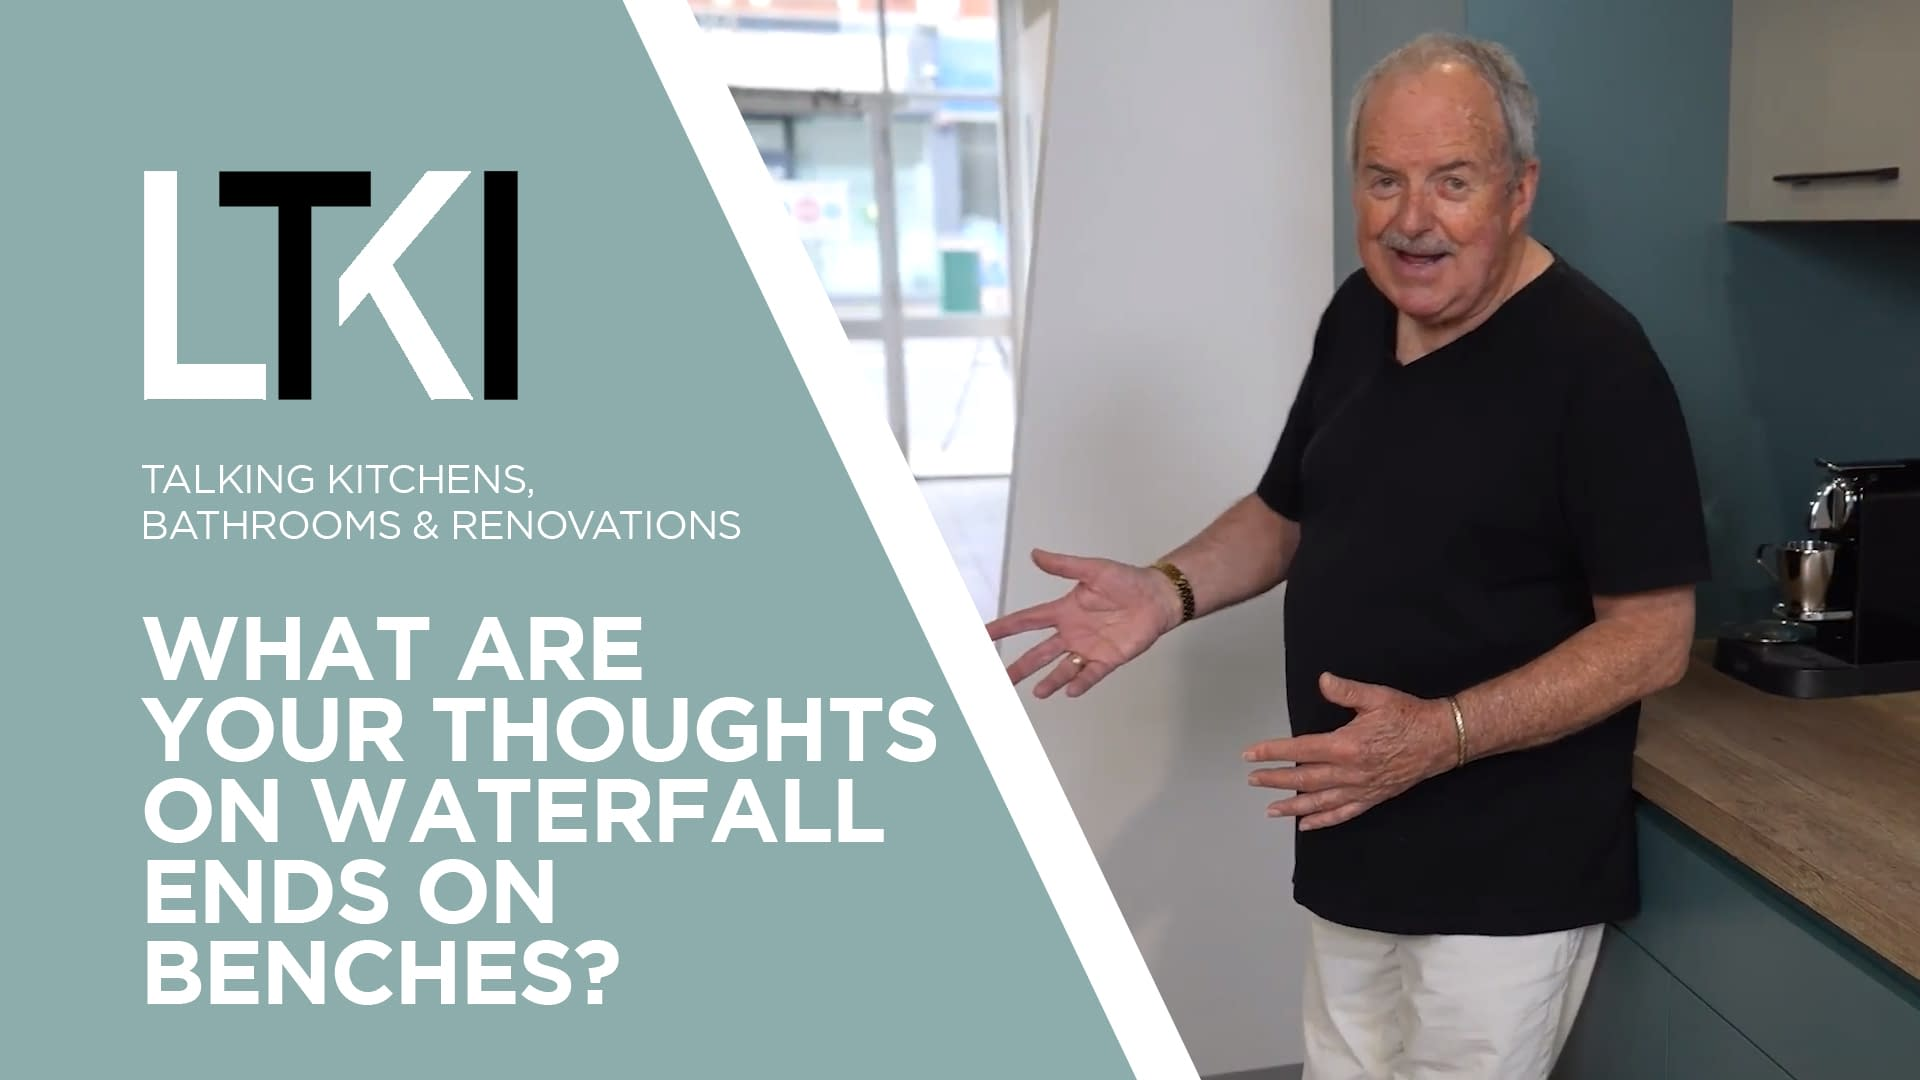 Talking Kitchens, Bathrooms & Renovations:  What Are Your Thoughts On Waterfall Ends On Benches?